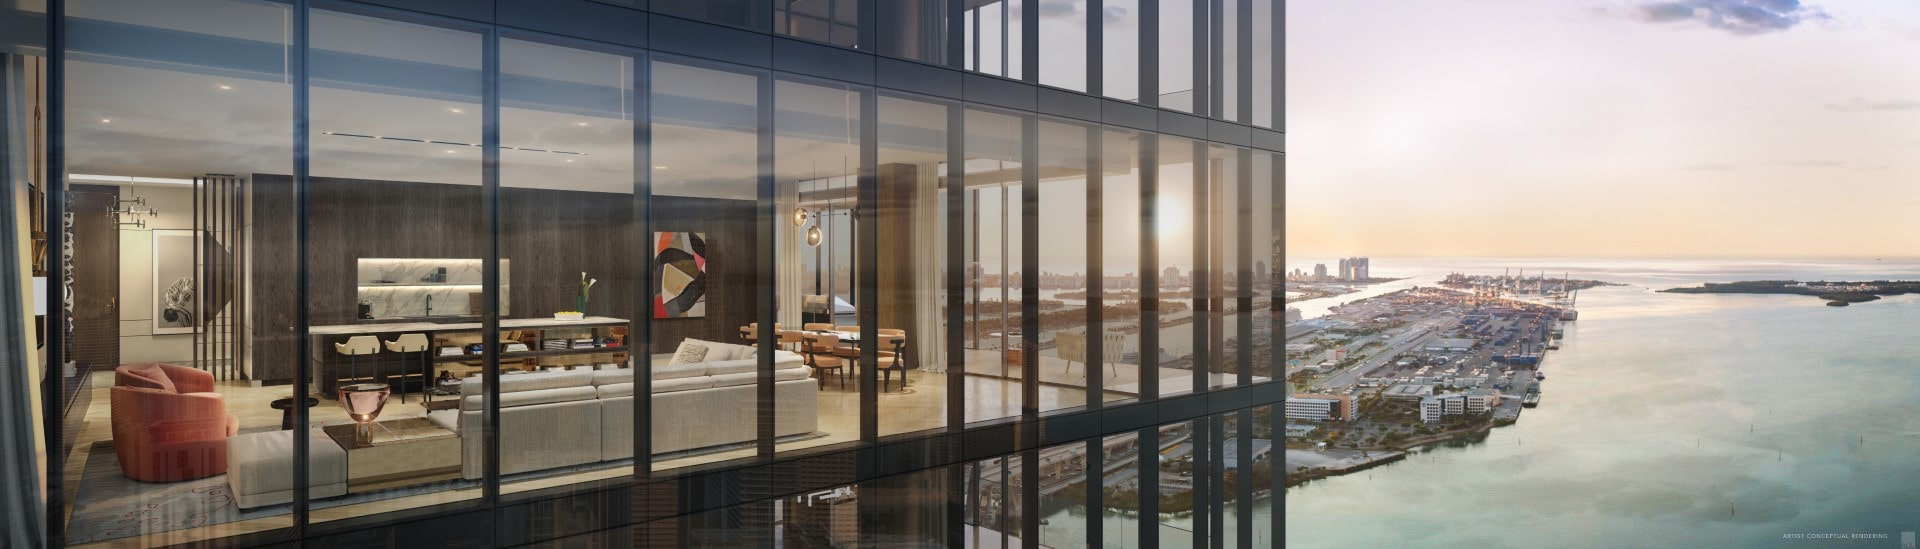 View of residential unit at Waldorf Astoria Miami, rendering by Bamo Interior Design